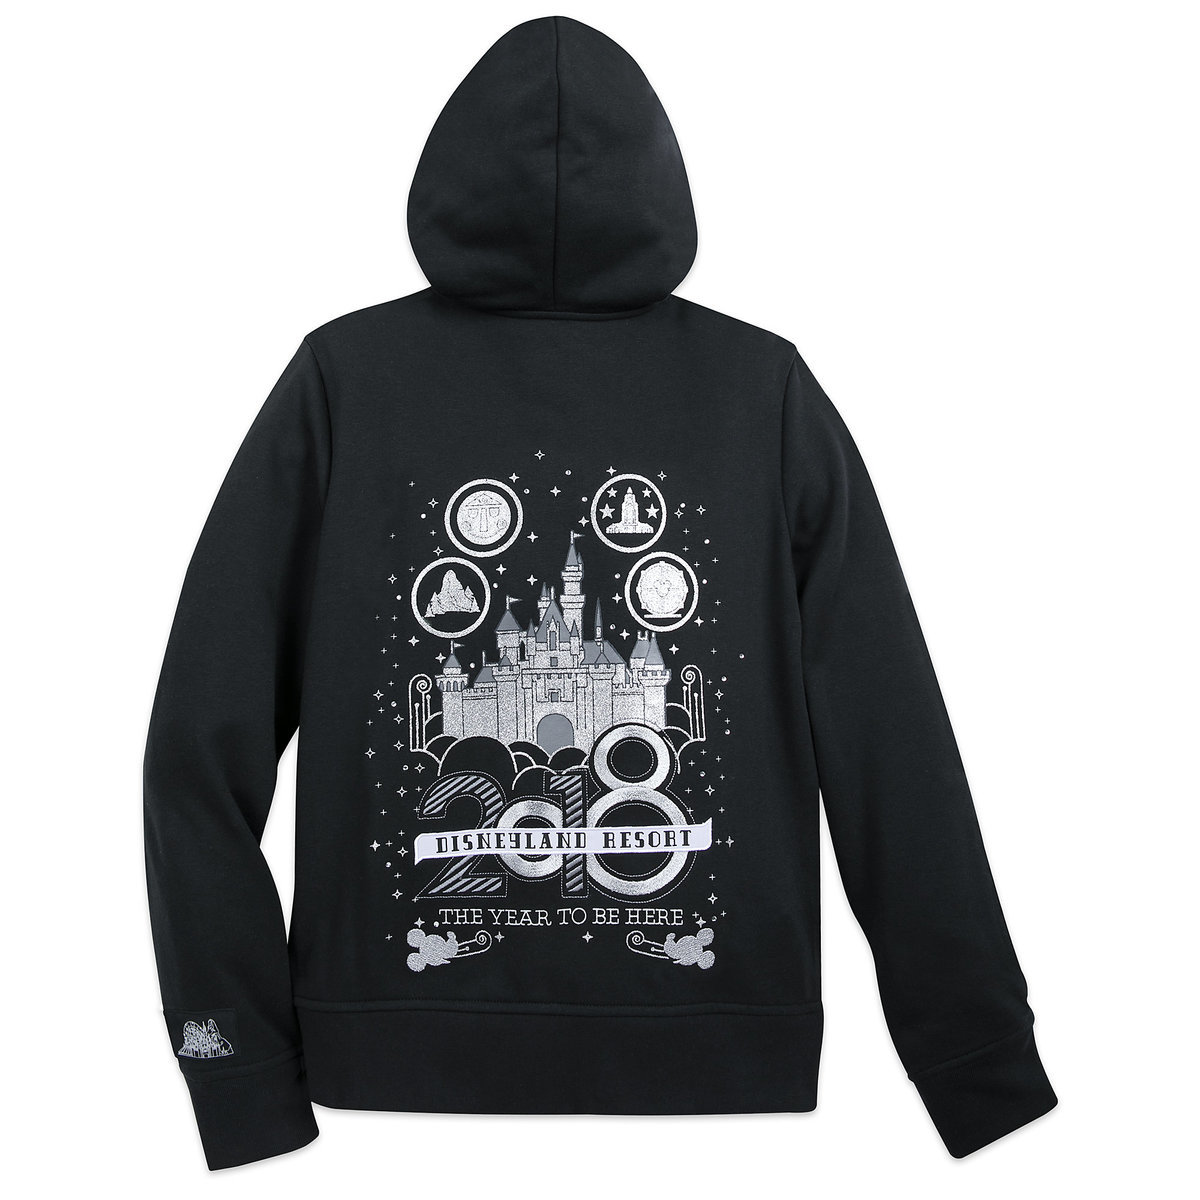 770c44f83ae3 Product Image of Disneyland 2018 Hoodie for Women   2